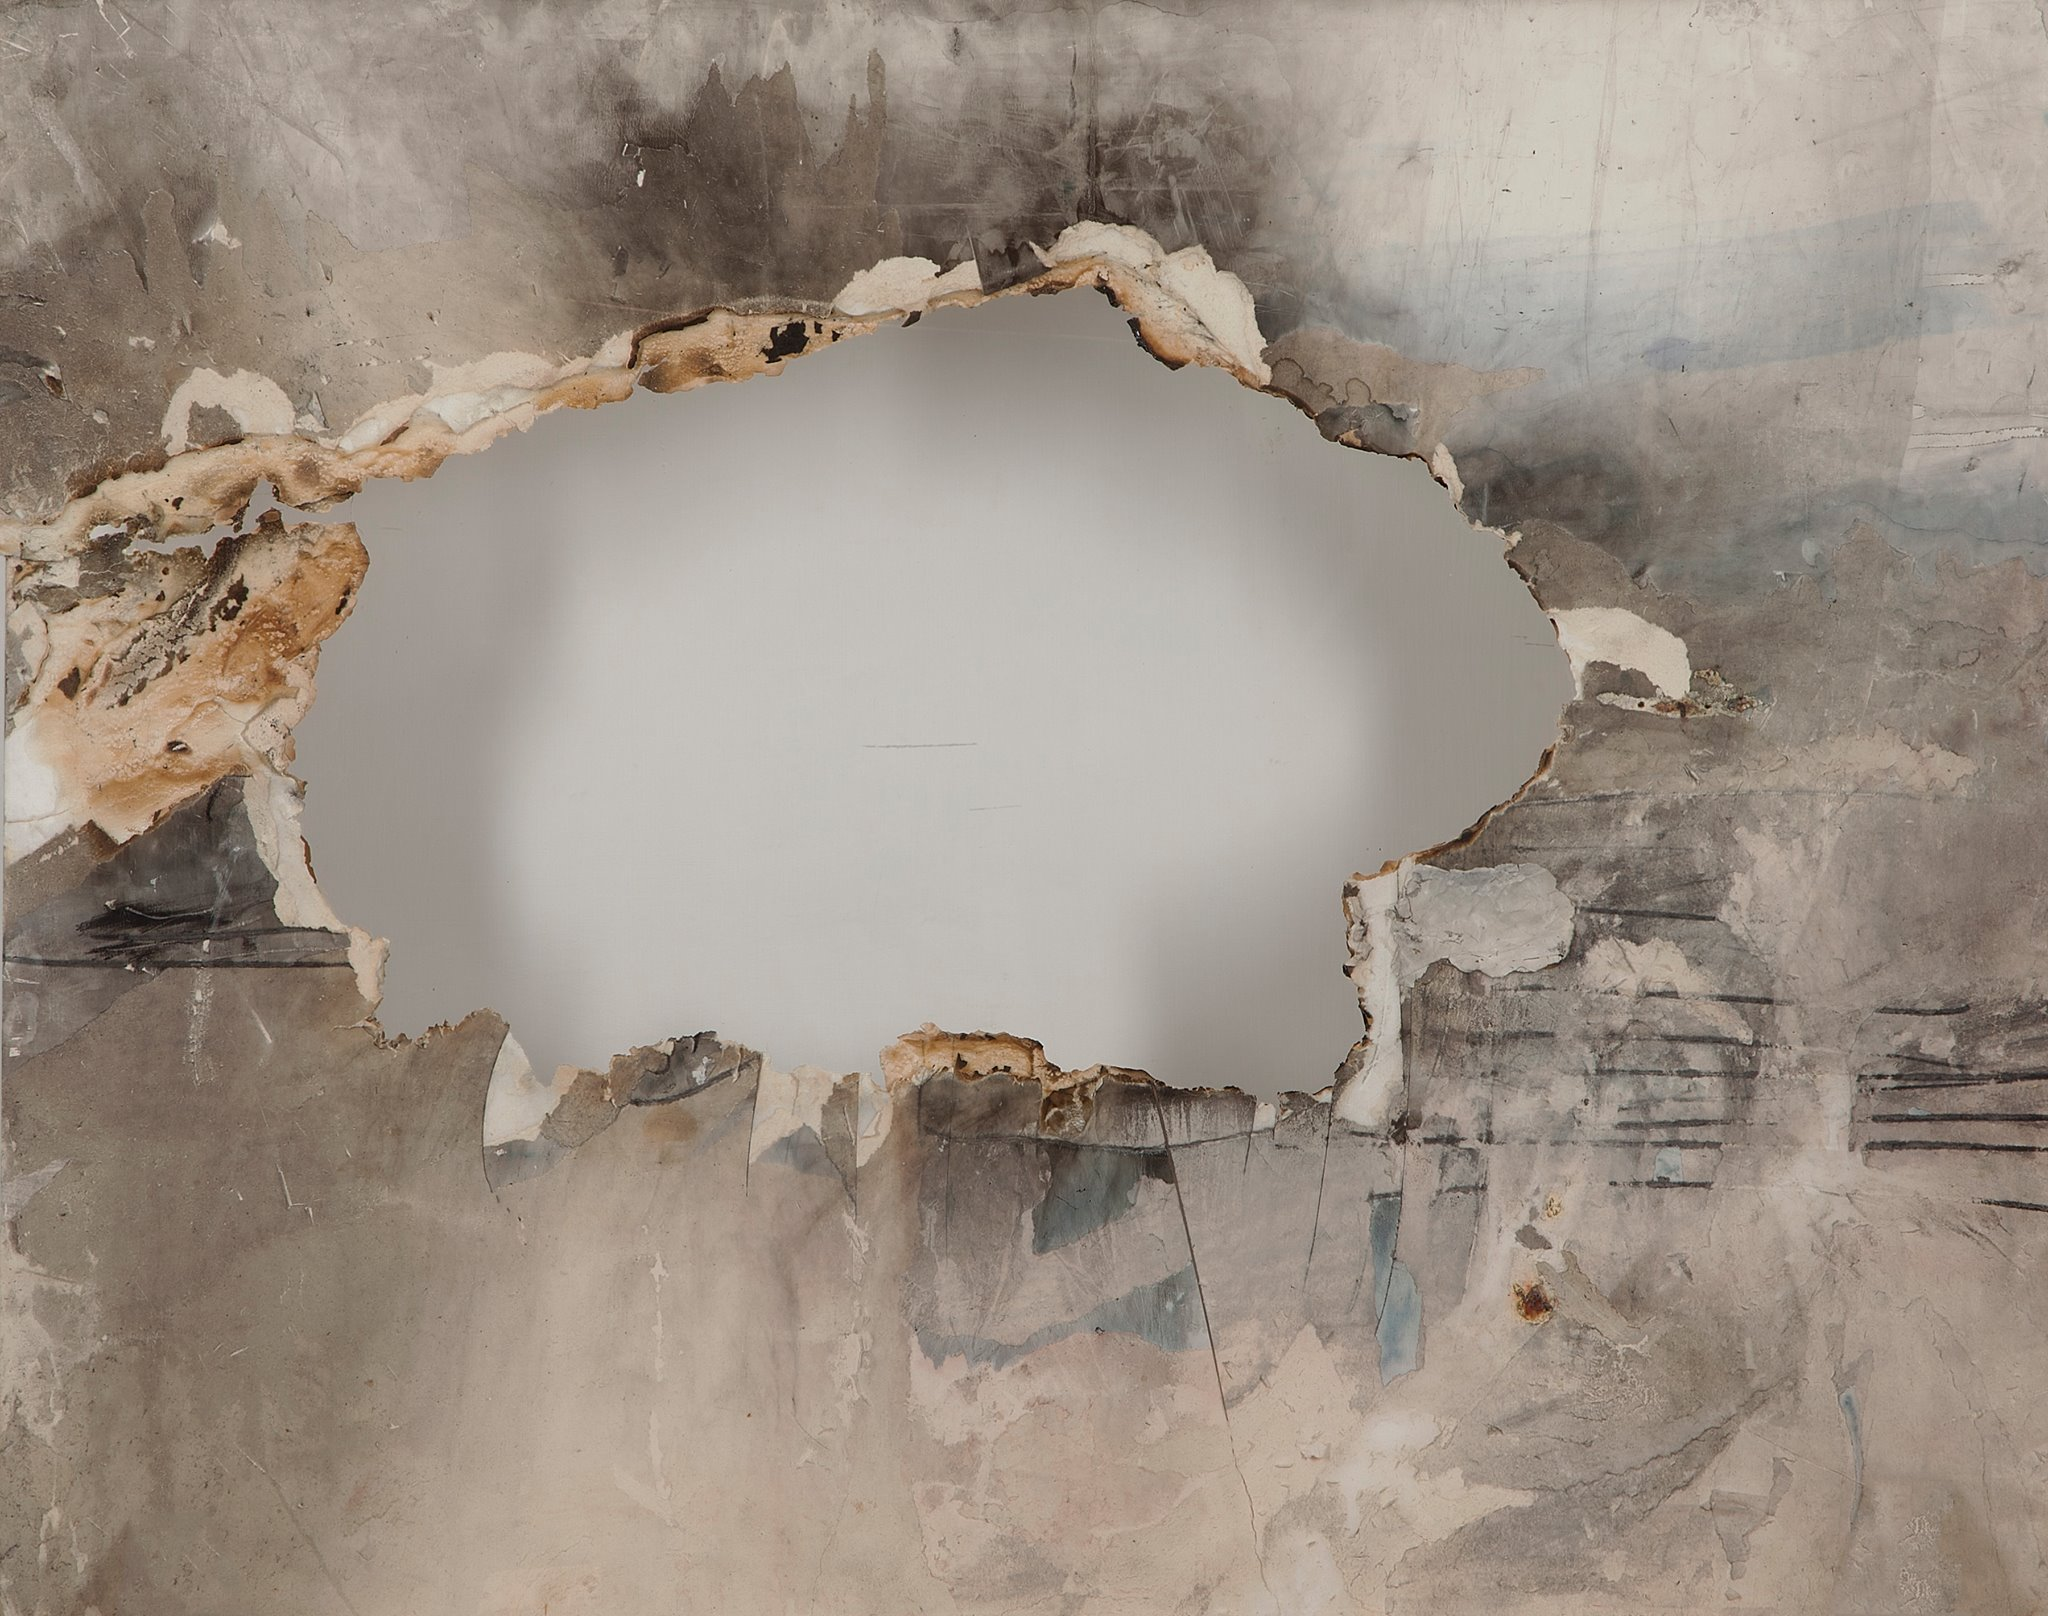 Shaker Hassan al Said, Untitled, 1990s. Mixed media on wood, 86.5 x 104.5 cm.